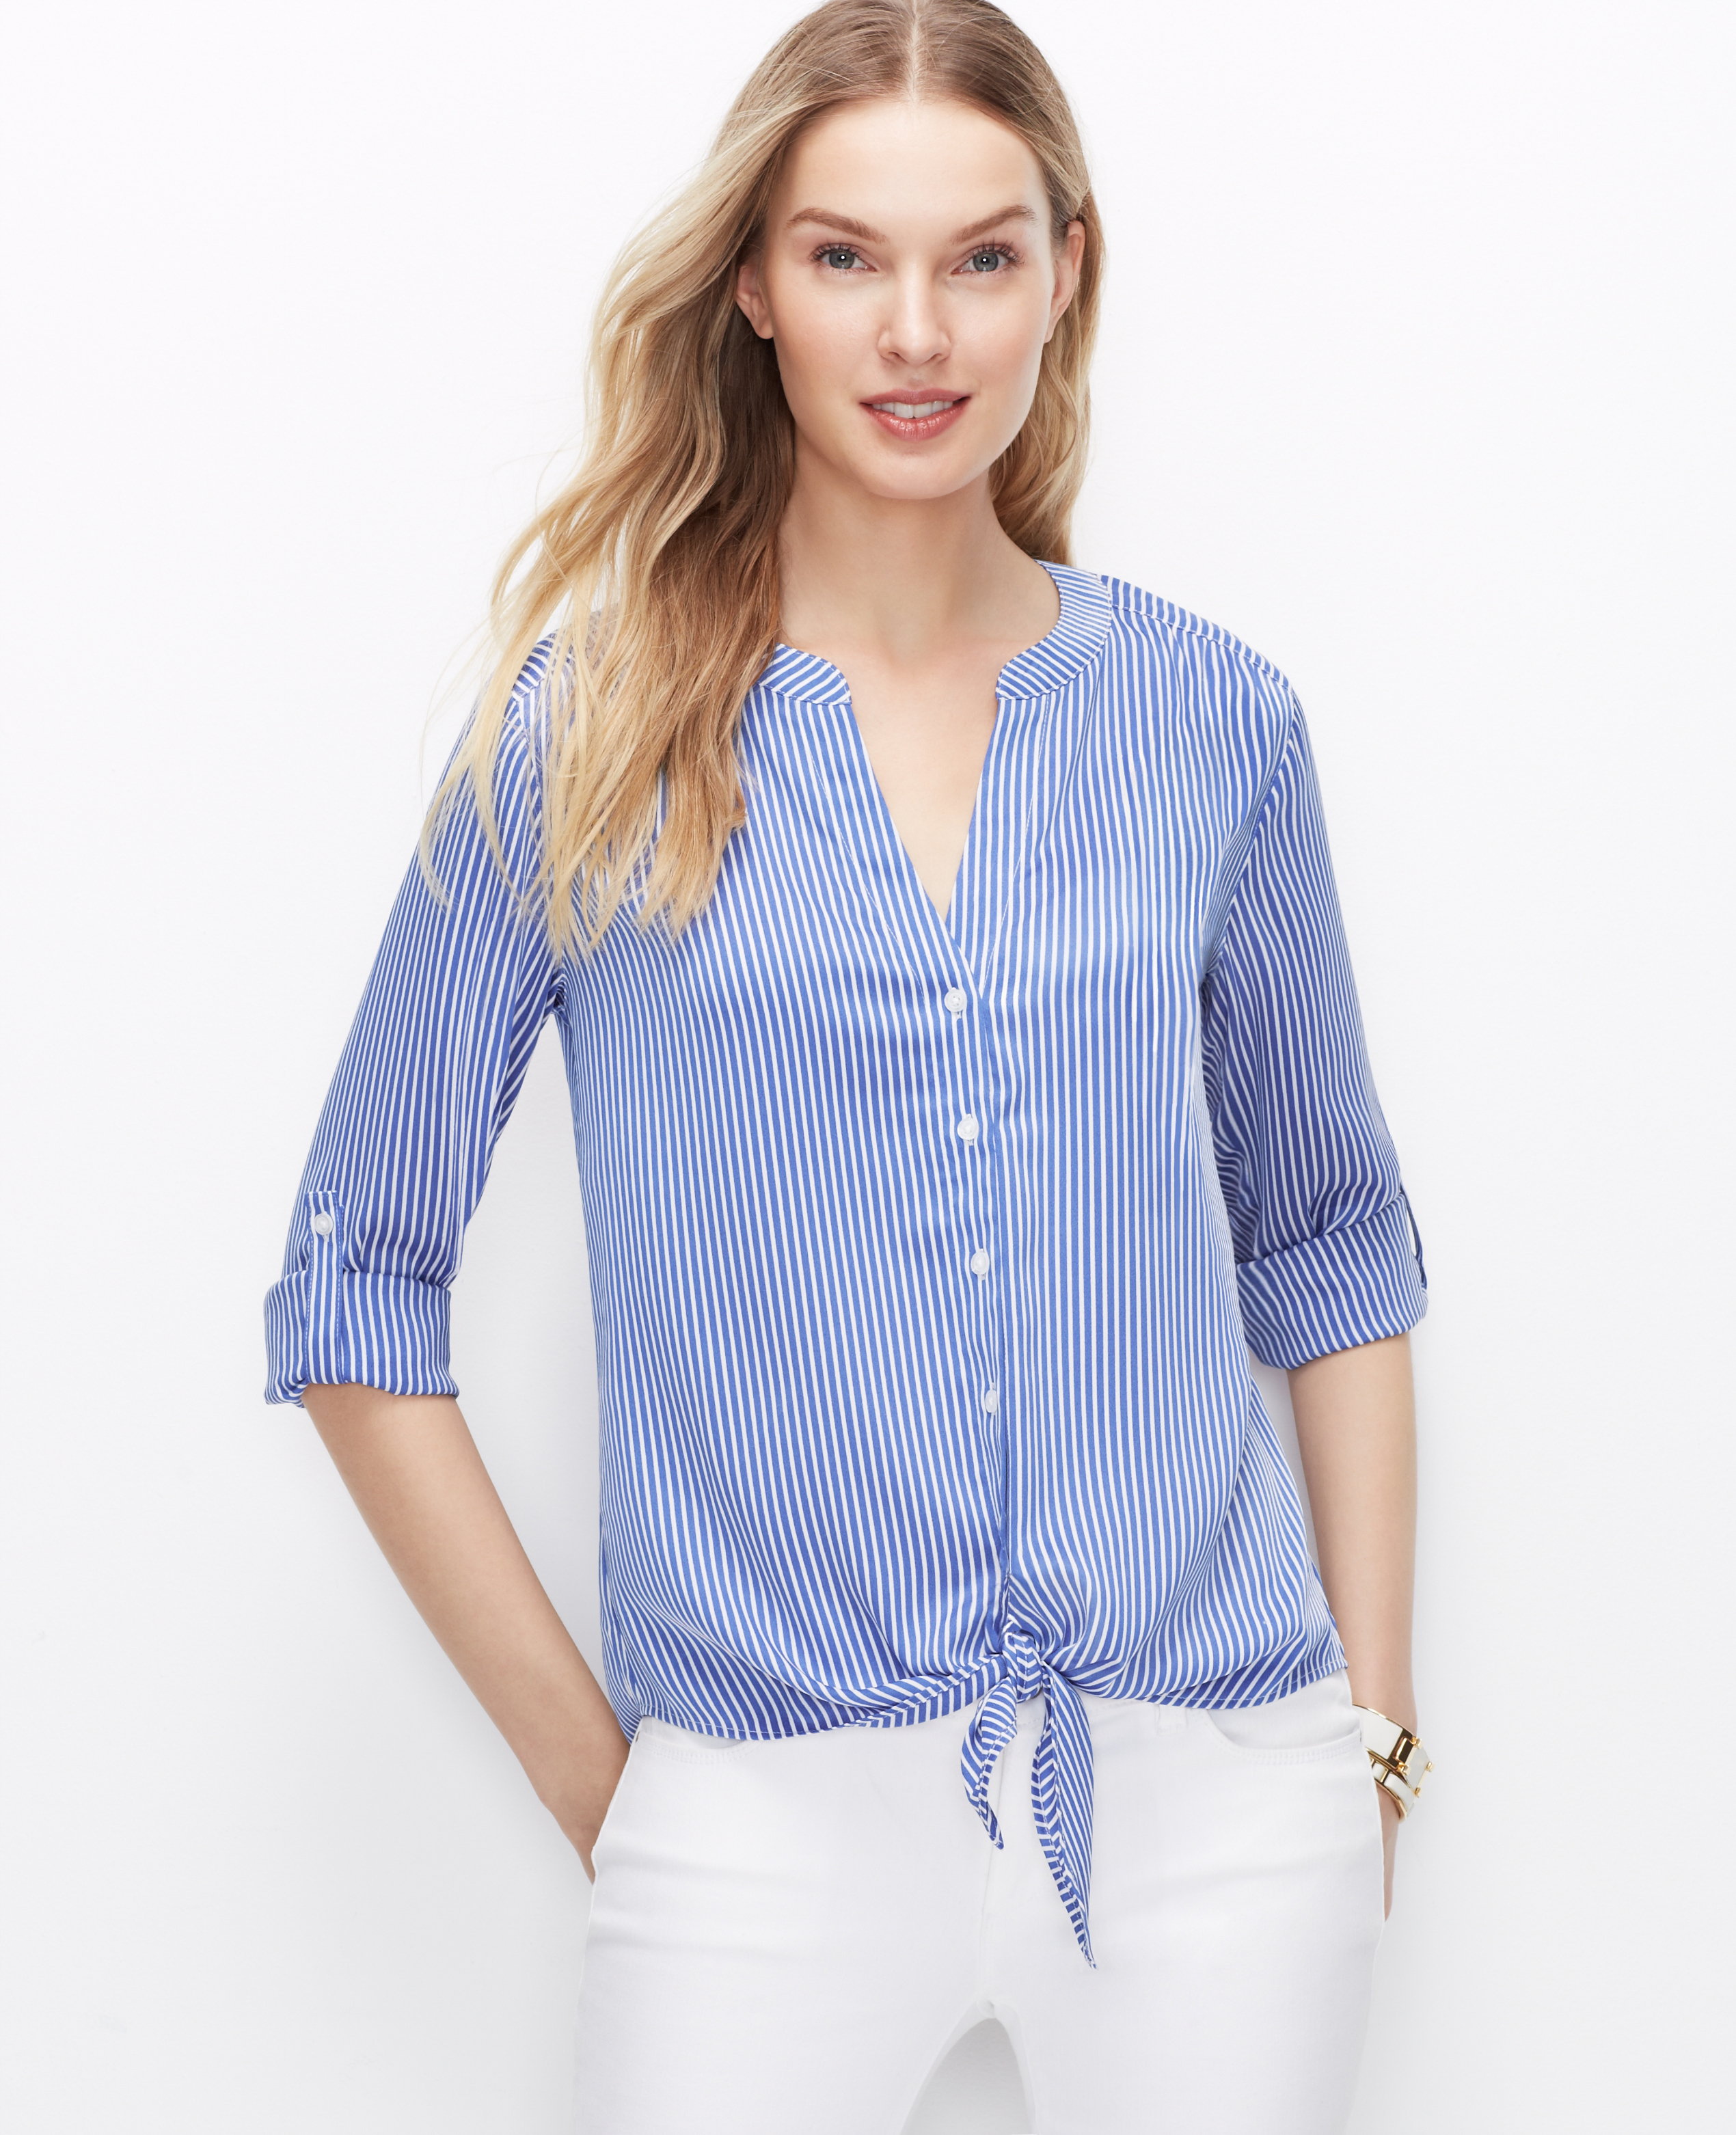 69c87858e41c1 Lyst - Ann Taylor Striped Tie Front Blouse in Blue